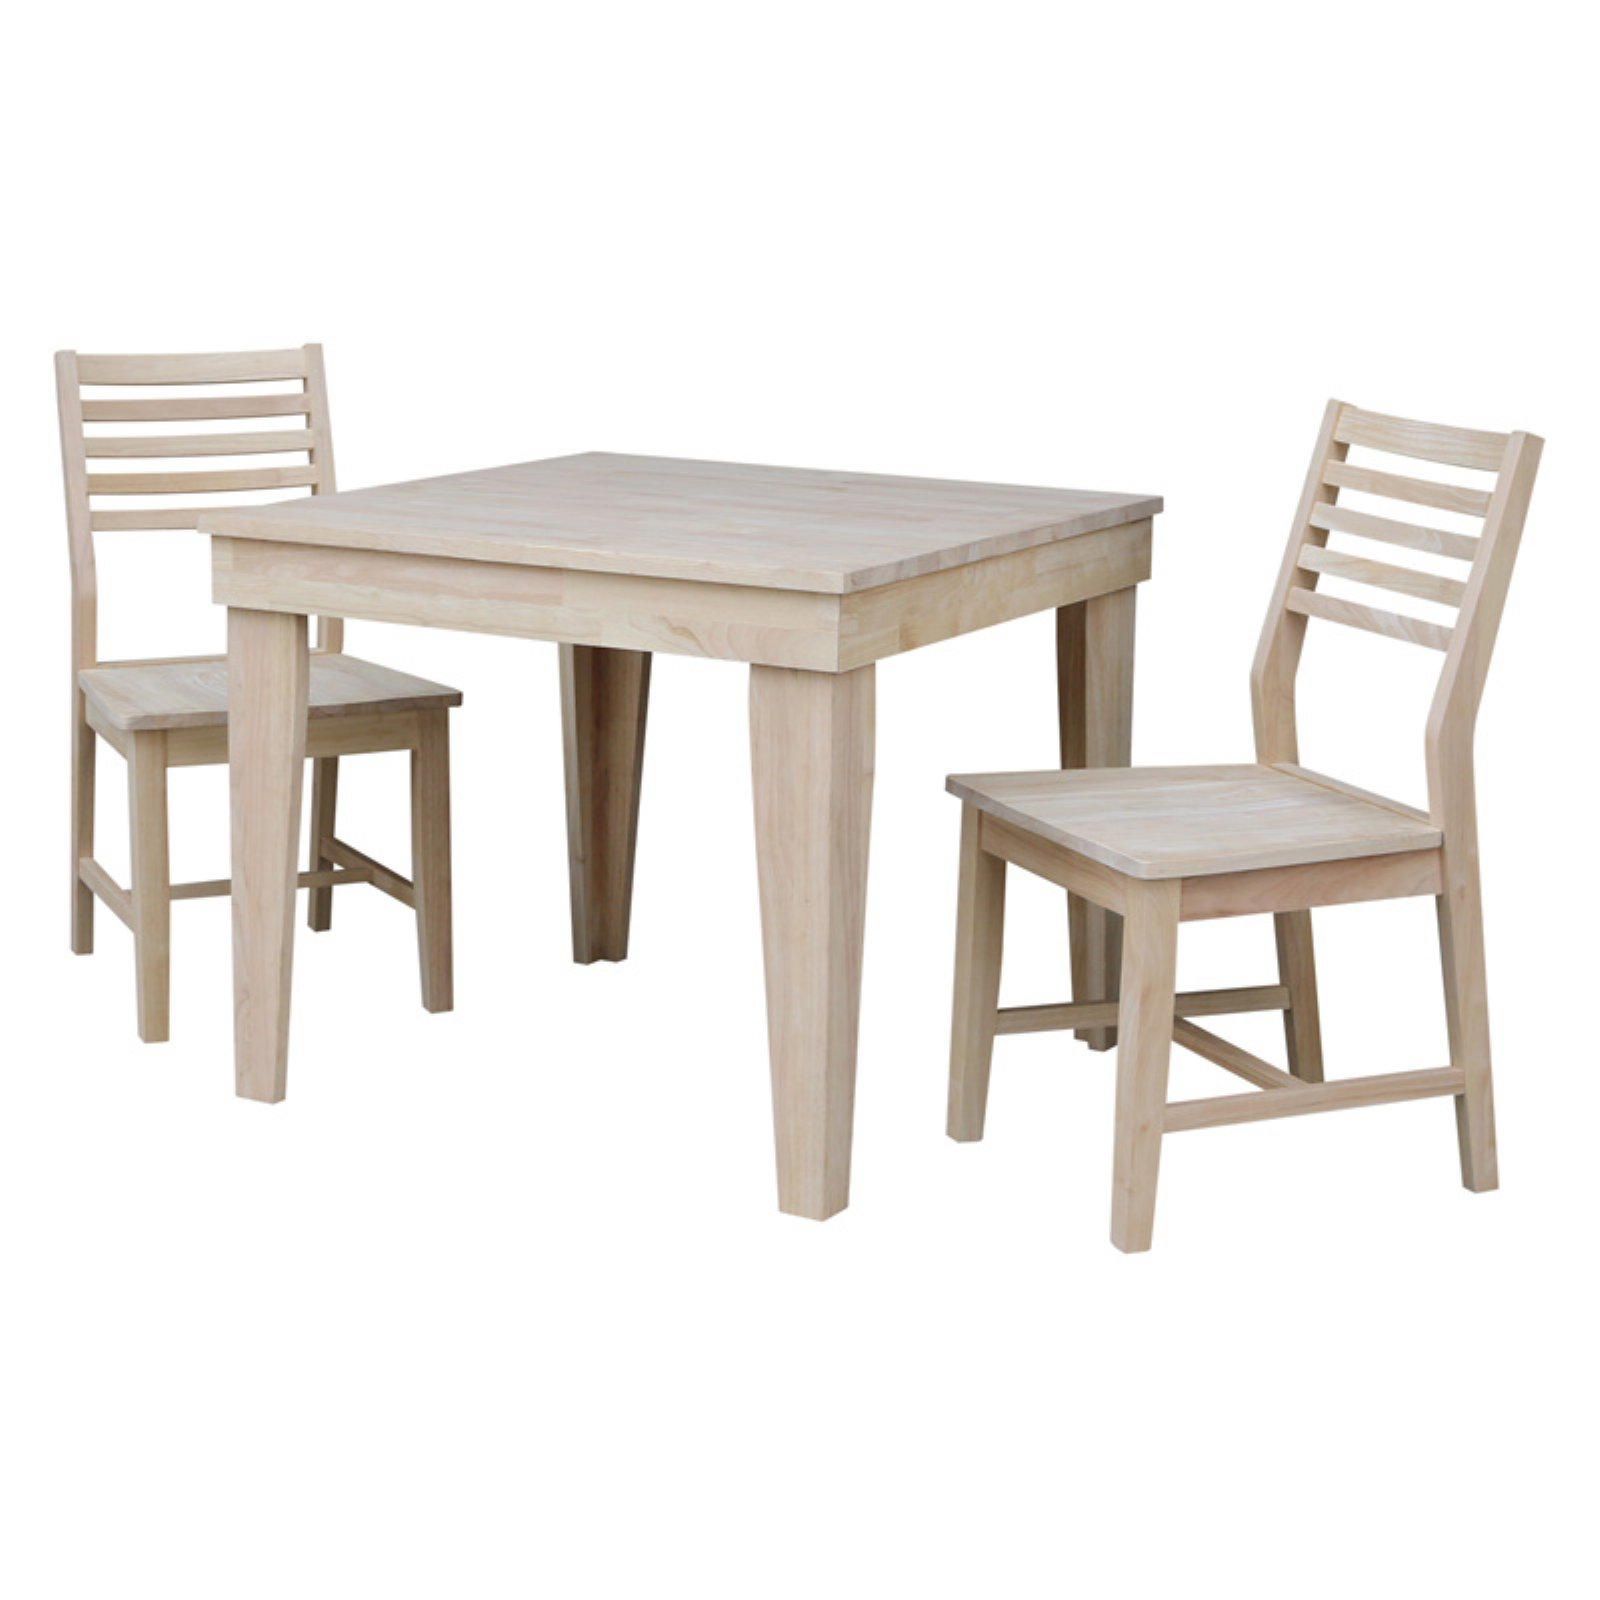 Brilliant International Concepts Aspen 3 Piece Square Dining Table Set Pdpeps Interior Chair Design Pdpepsorg